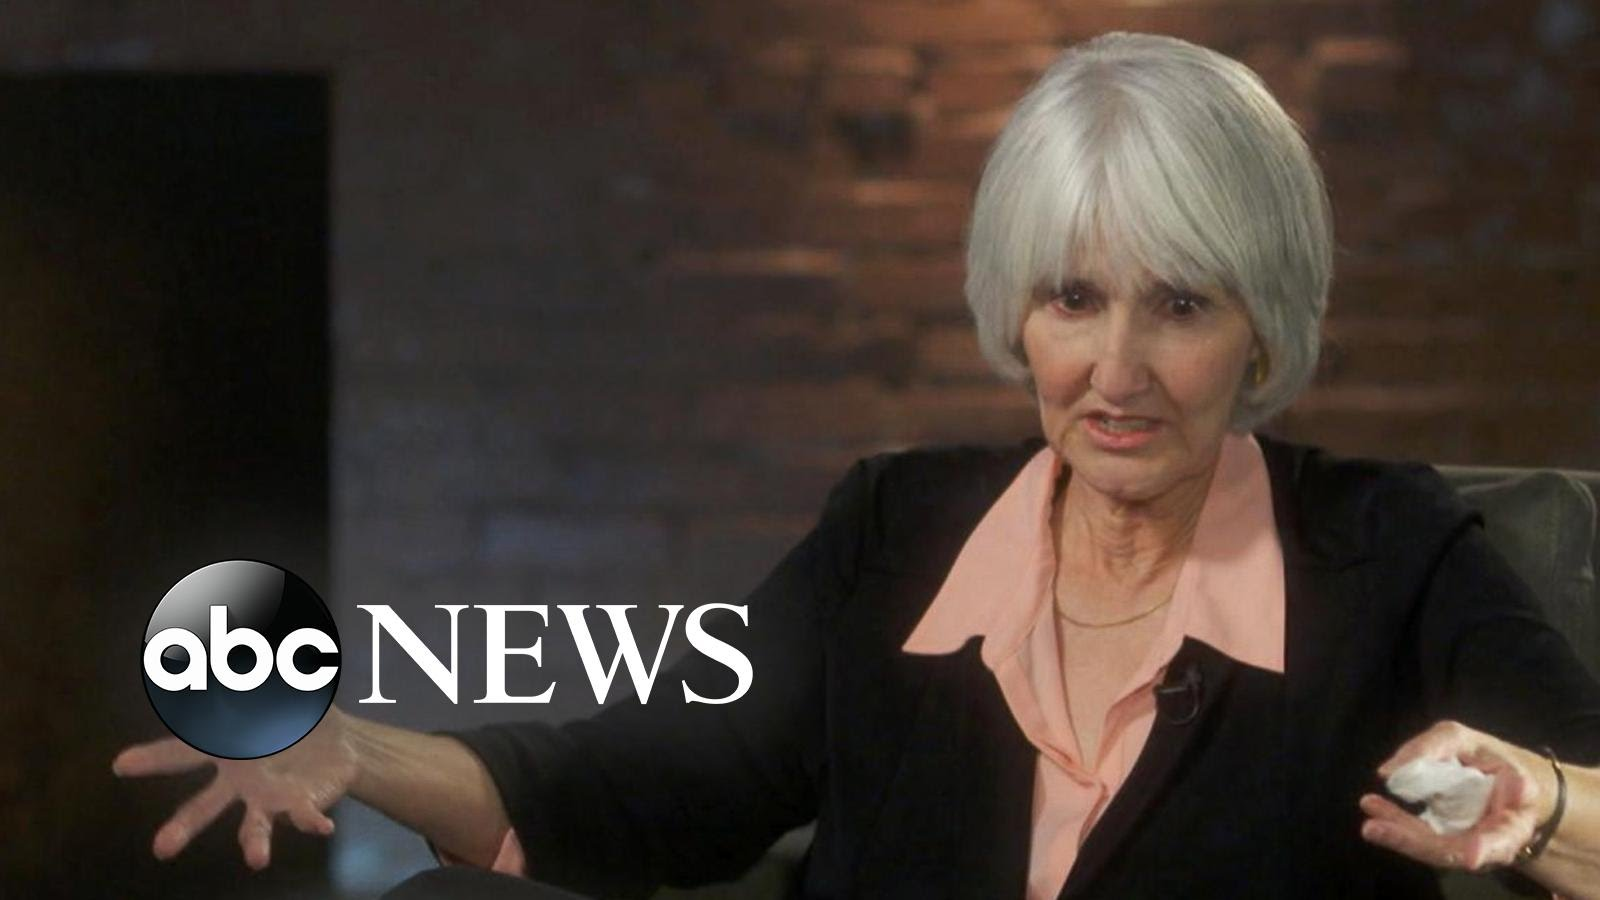 Columbine Revisted Sue Klebold Recalls Her Son Channel